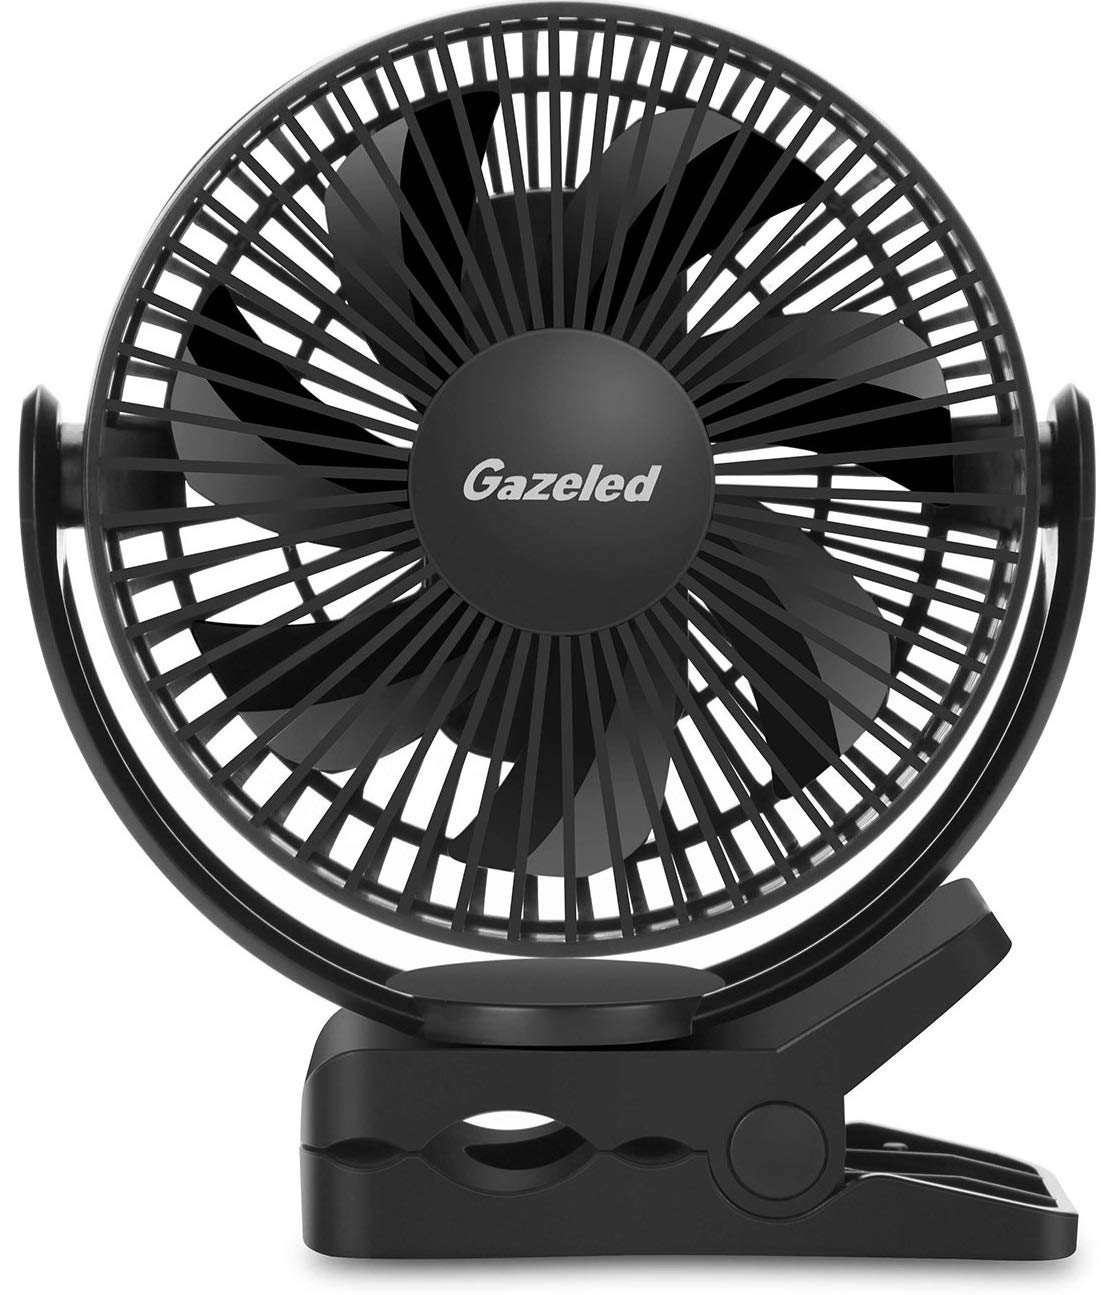 Gazeled Battery Operated Fans for Camping, Battery Powered Fan with Clip, Timer, 3 Speeds, 6700mAh Rechargeable Stroller Fan, Portable Fan with Strong Clamp, Quiet Desk Fan for Home,Office,Black